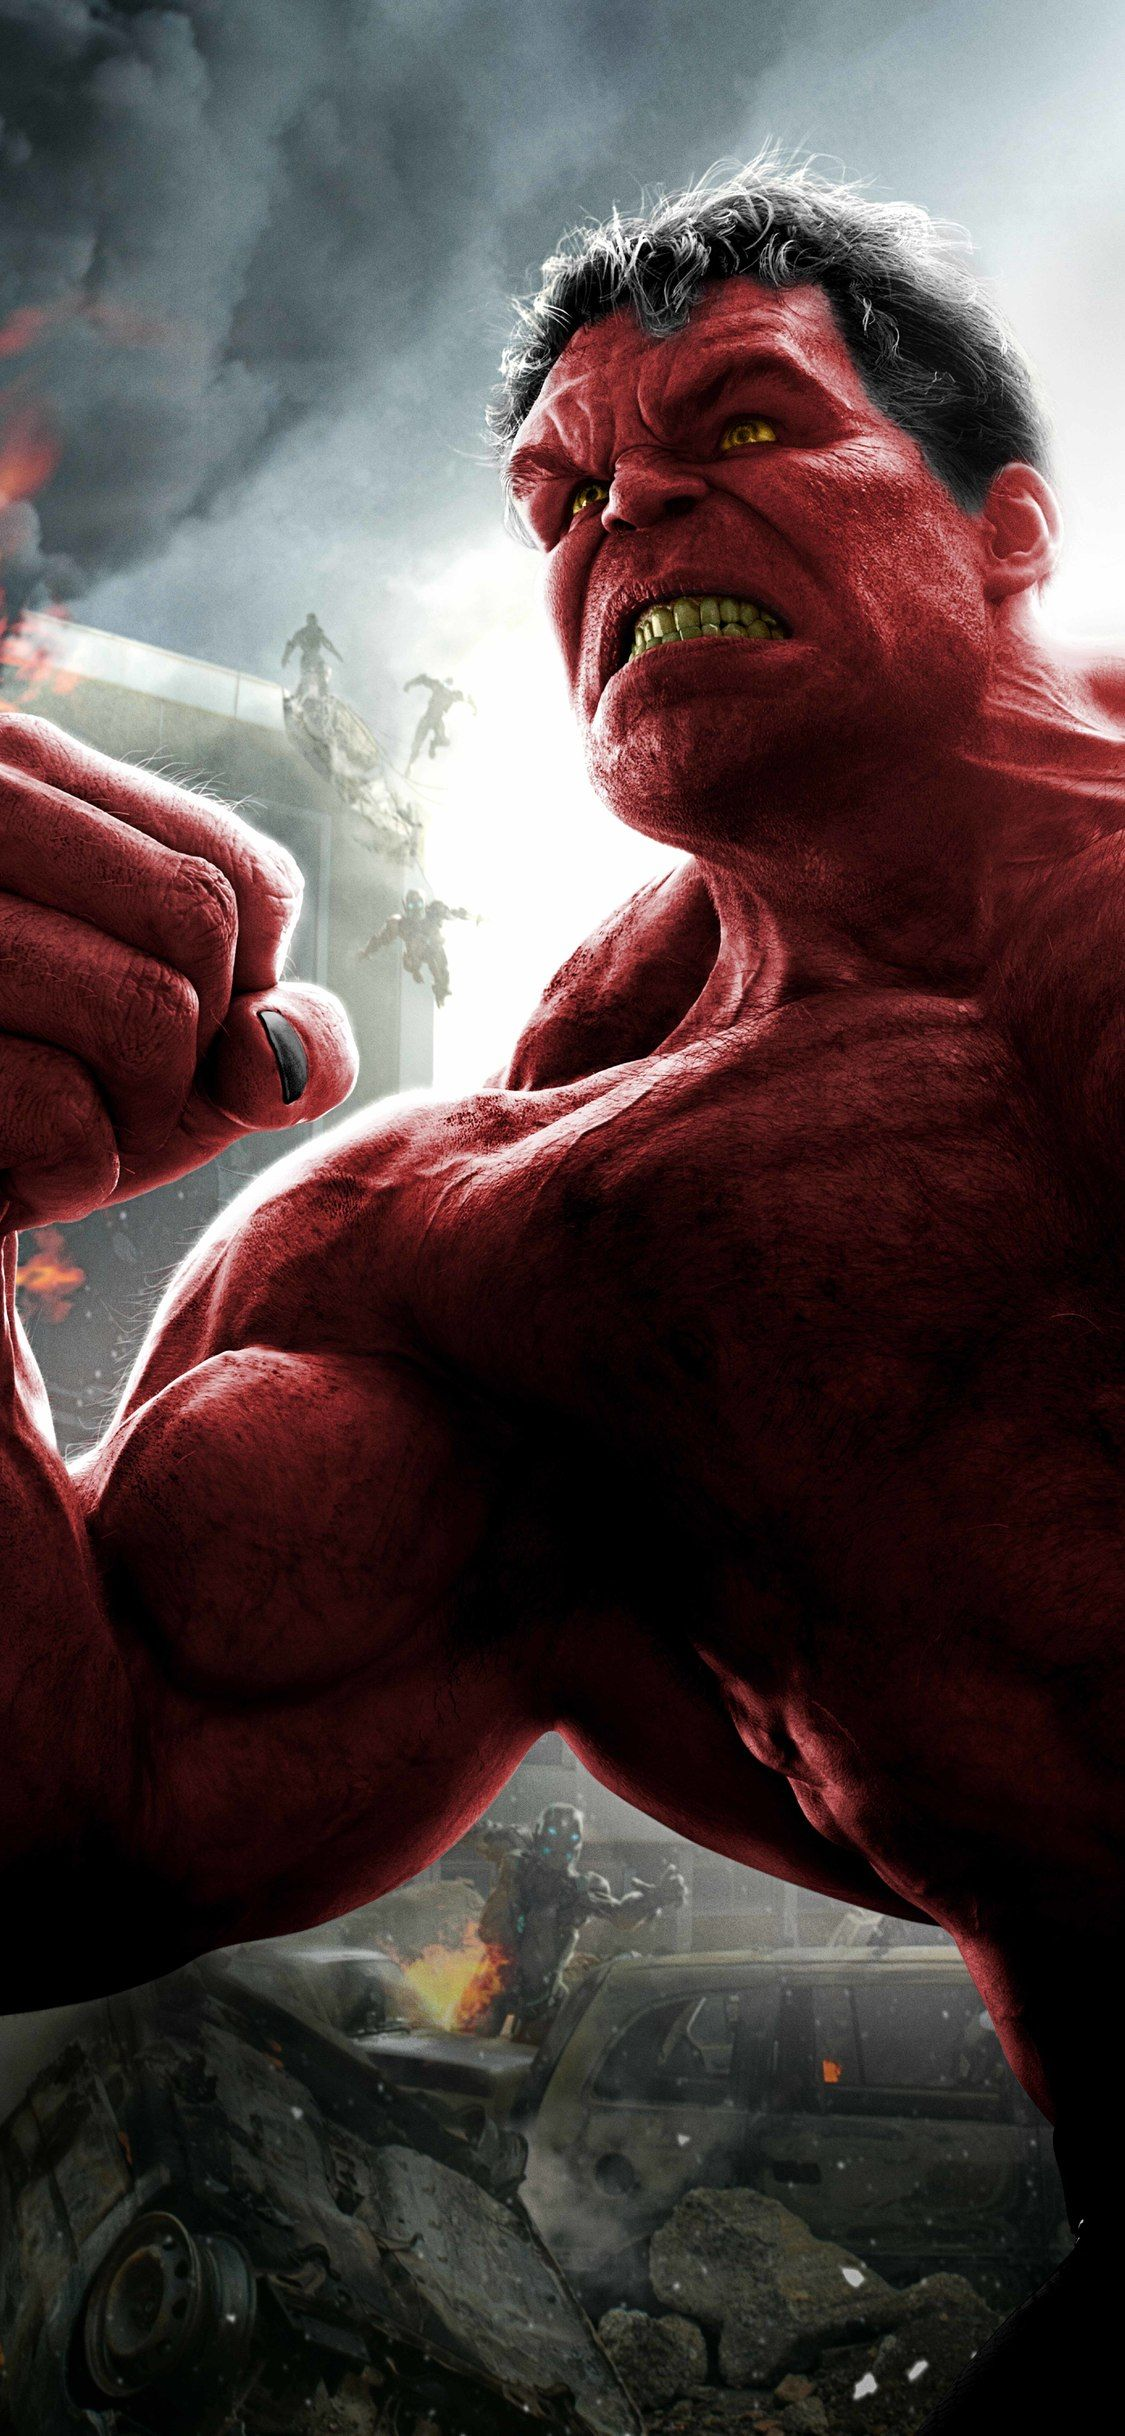 1125x2436 Red Hulk 8k Iphone Xs Iphone 10 Iphone X Hd 4k Wallpapers Images Backgrounds Photos And Pictures Red Hulk Hulk 8k Wallpaper